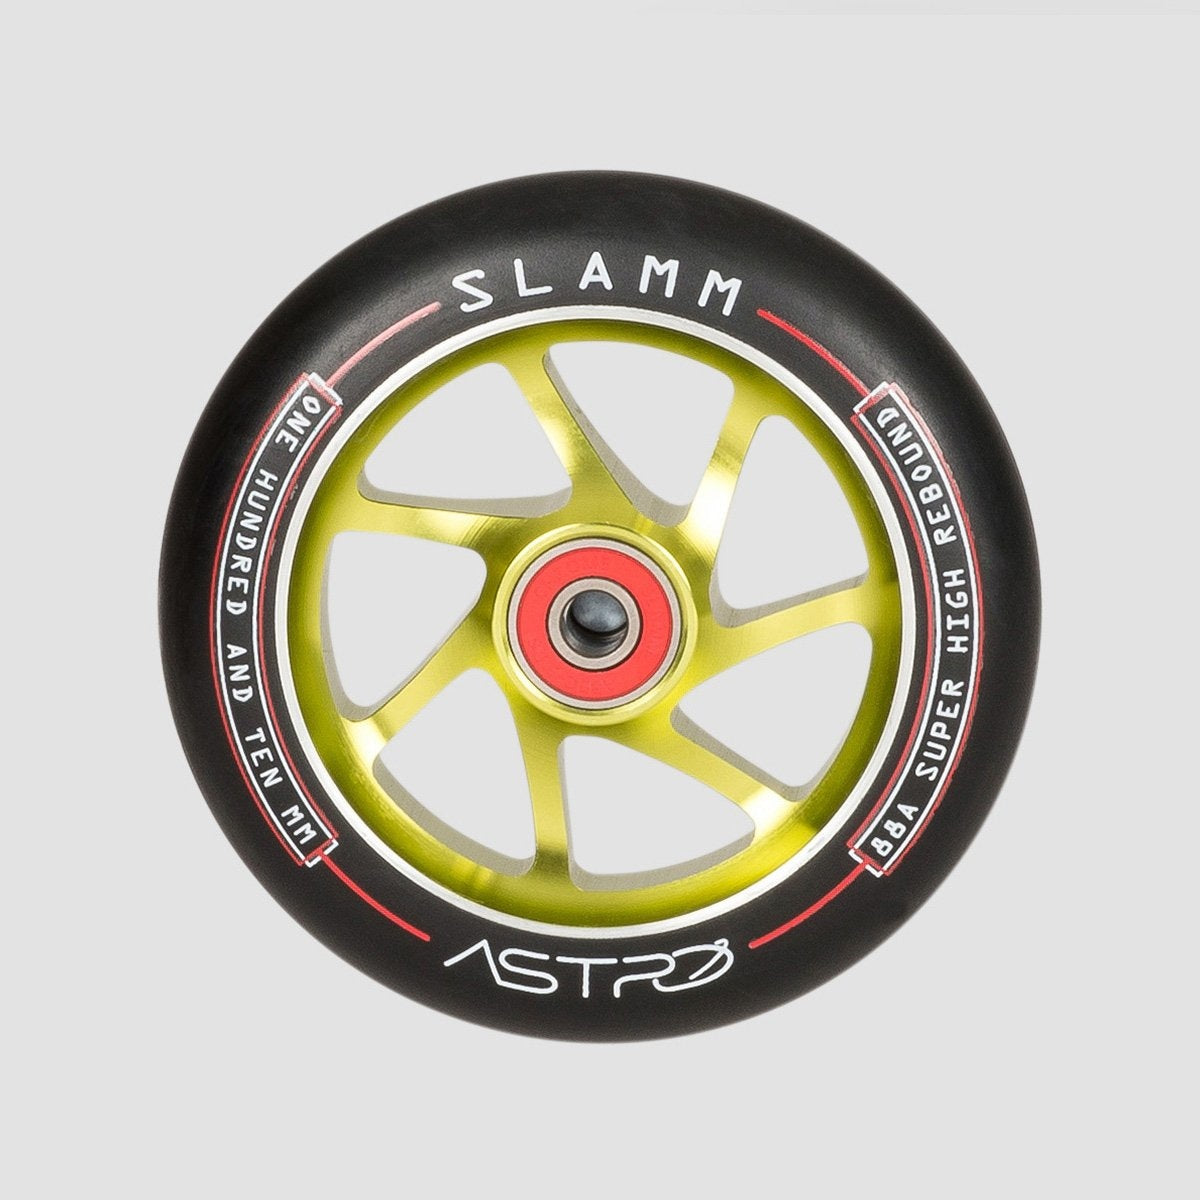 Slamm Astro Scooter Wheel x1 Green 110mm - Scooter